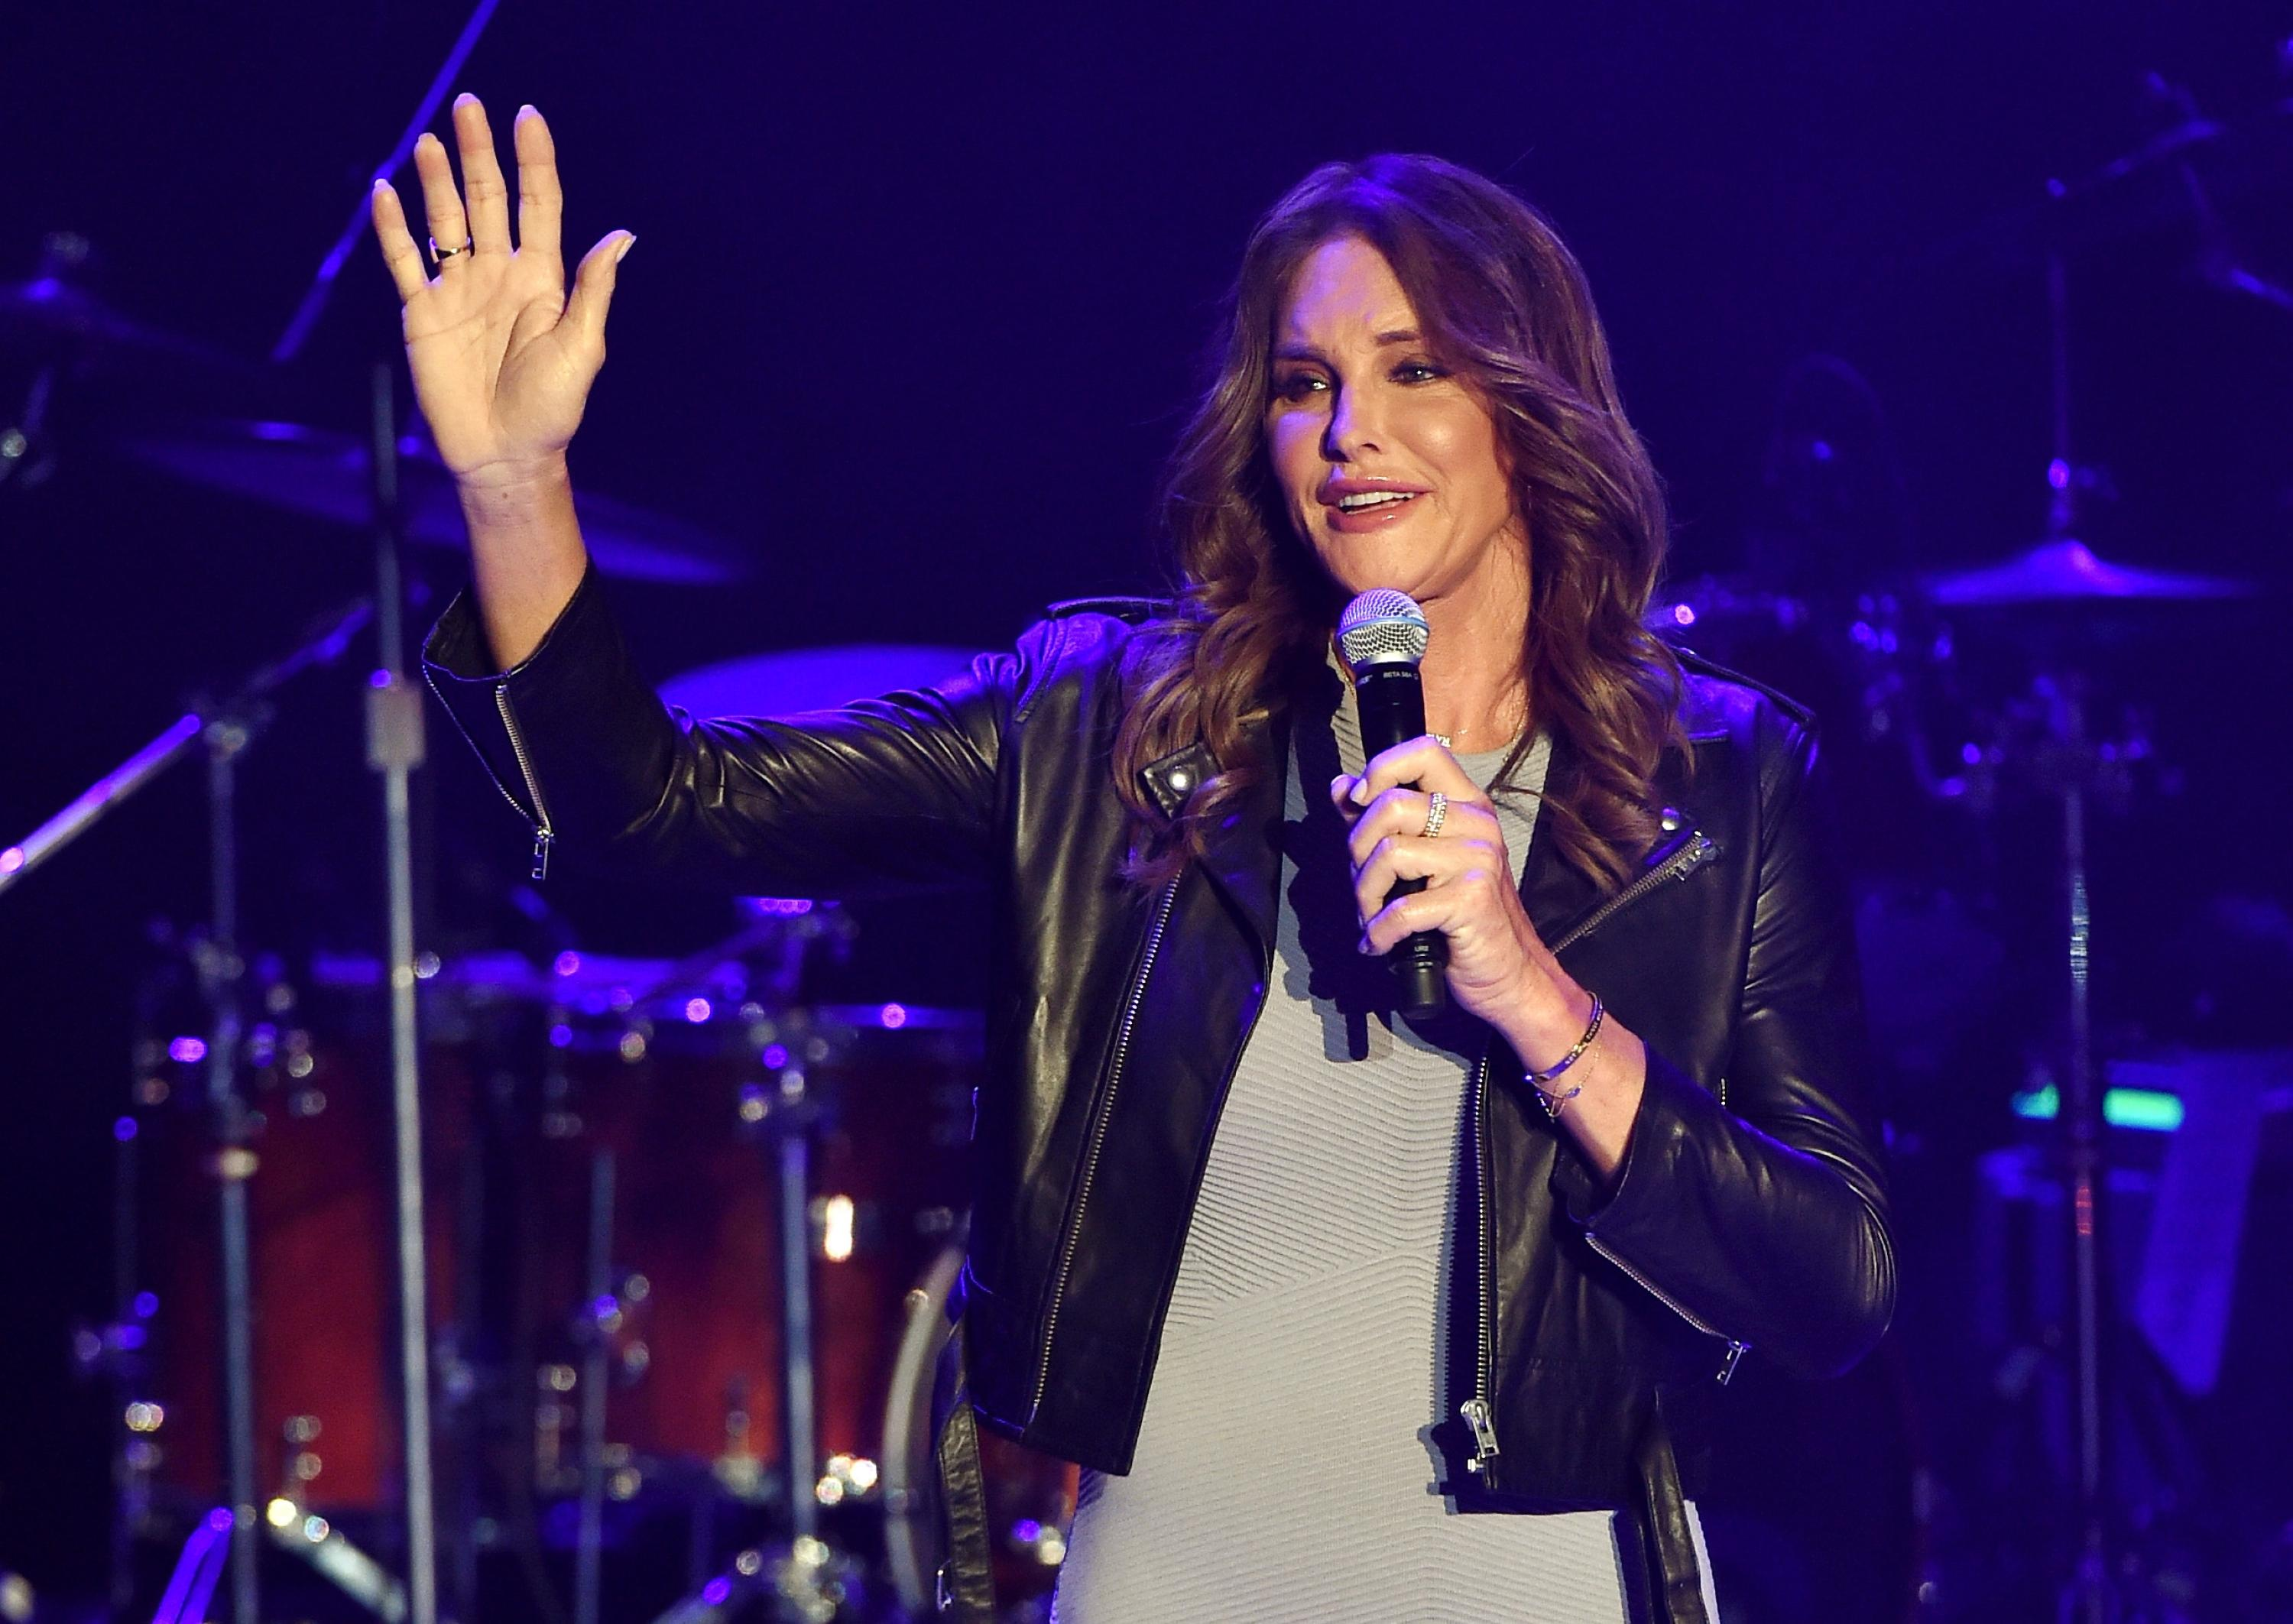 Caitlyn Jenner Surprises at Culture Club Concert, Receives Standing Ovation